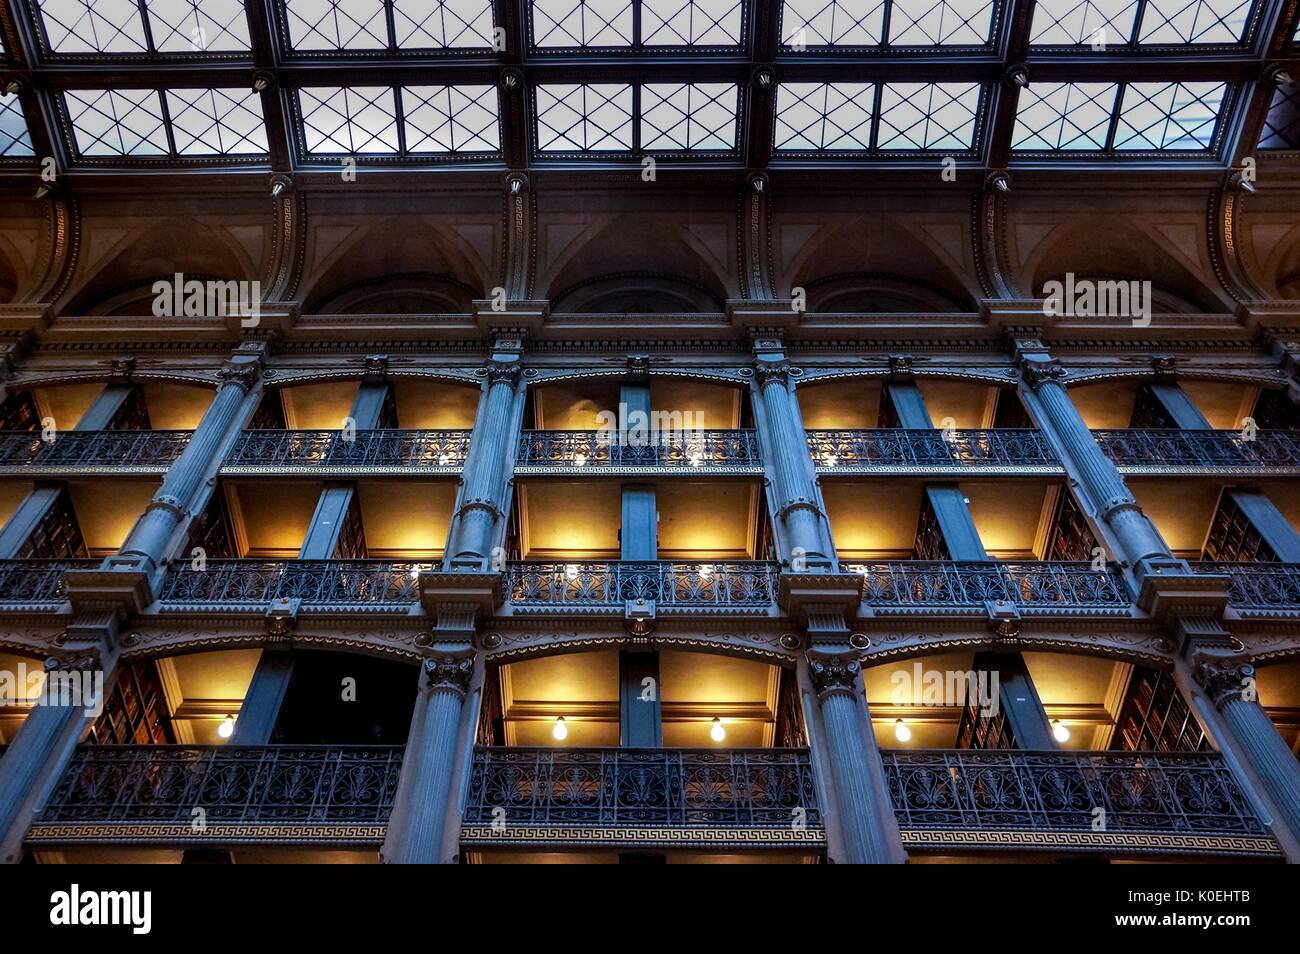 A low-angle shot of the levels of the George Peabody Library, a research library for Johns Hopkins University, with cast iron railings and exposed glowing light bulbs lighting the full bookshelves during the Baltimore Book Festival, Baltimore, Maryland, September 28, 2013. Courtesy Eric Chen. - Stock Image